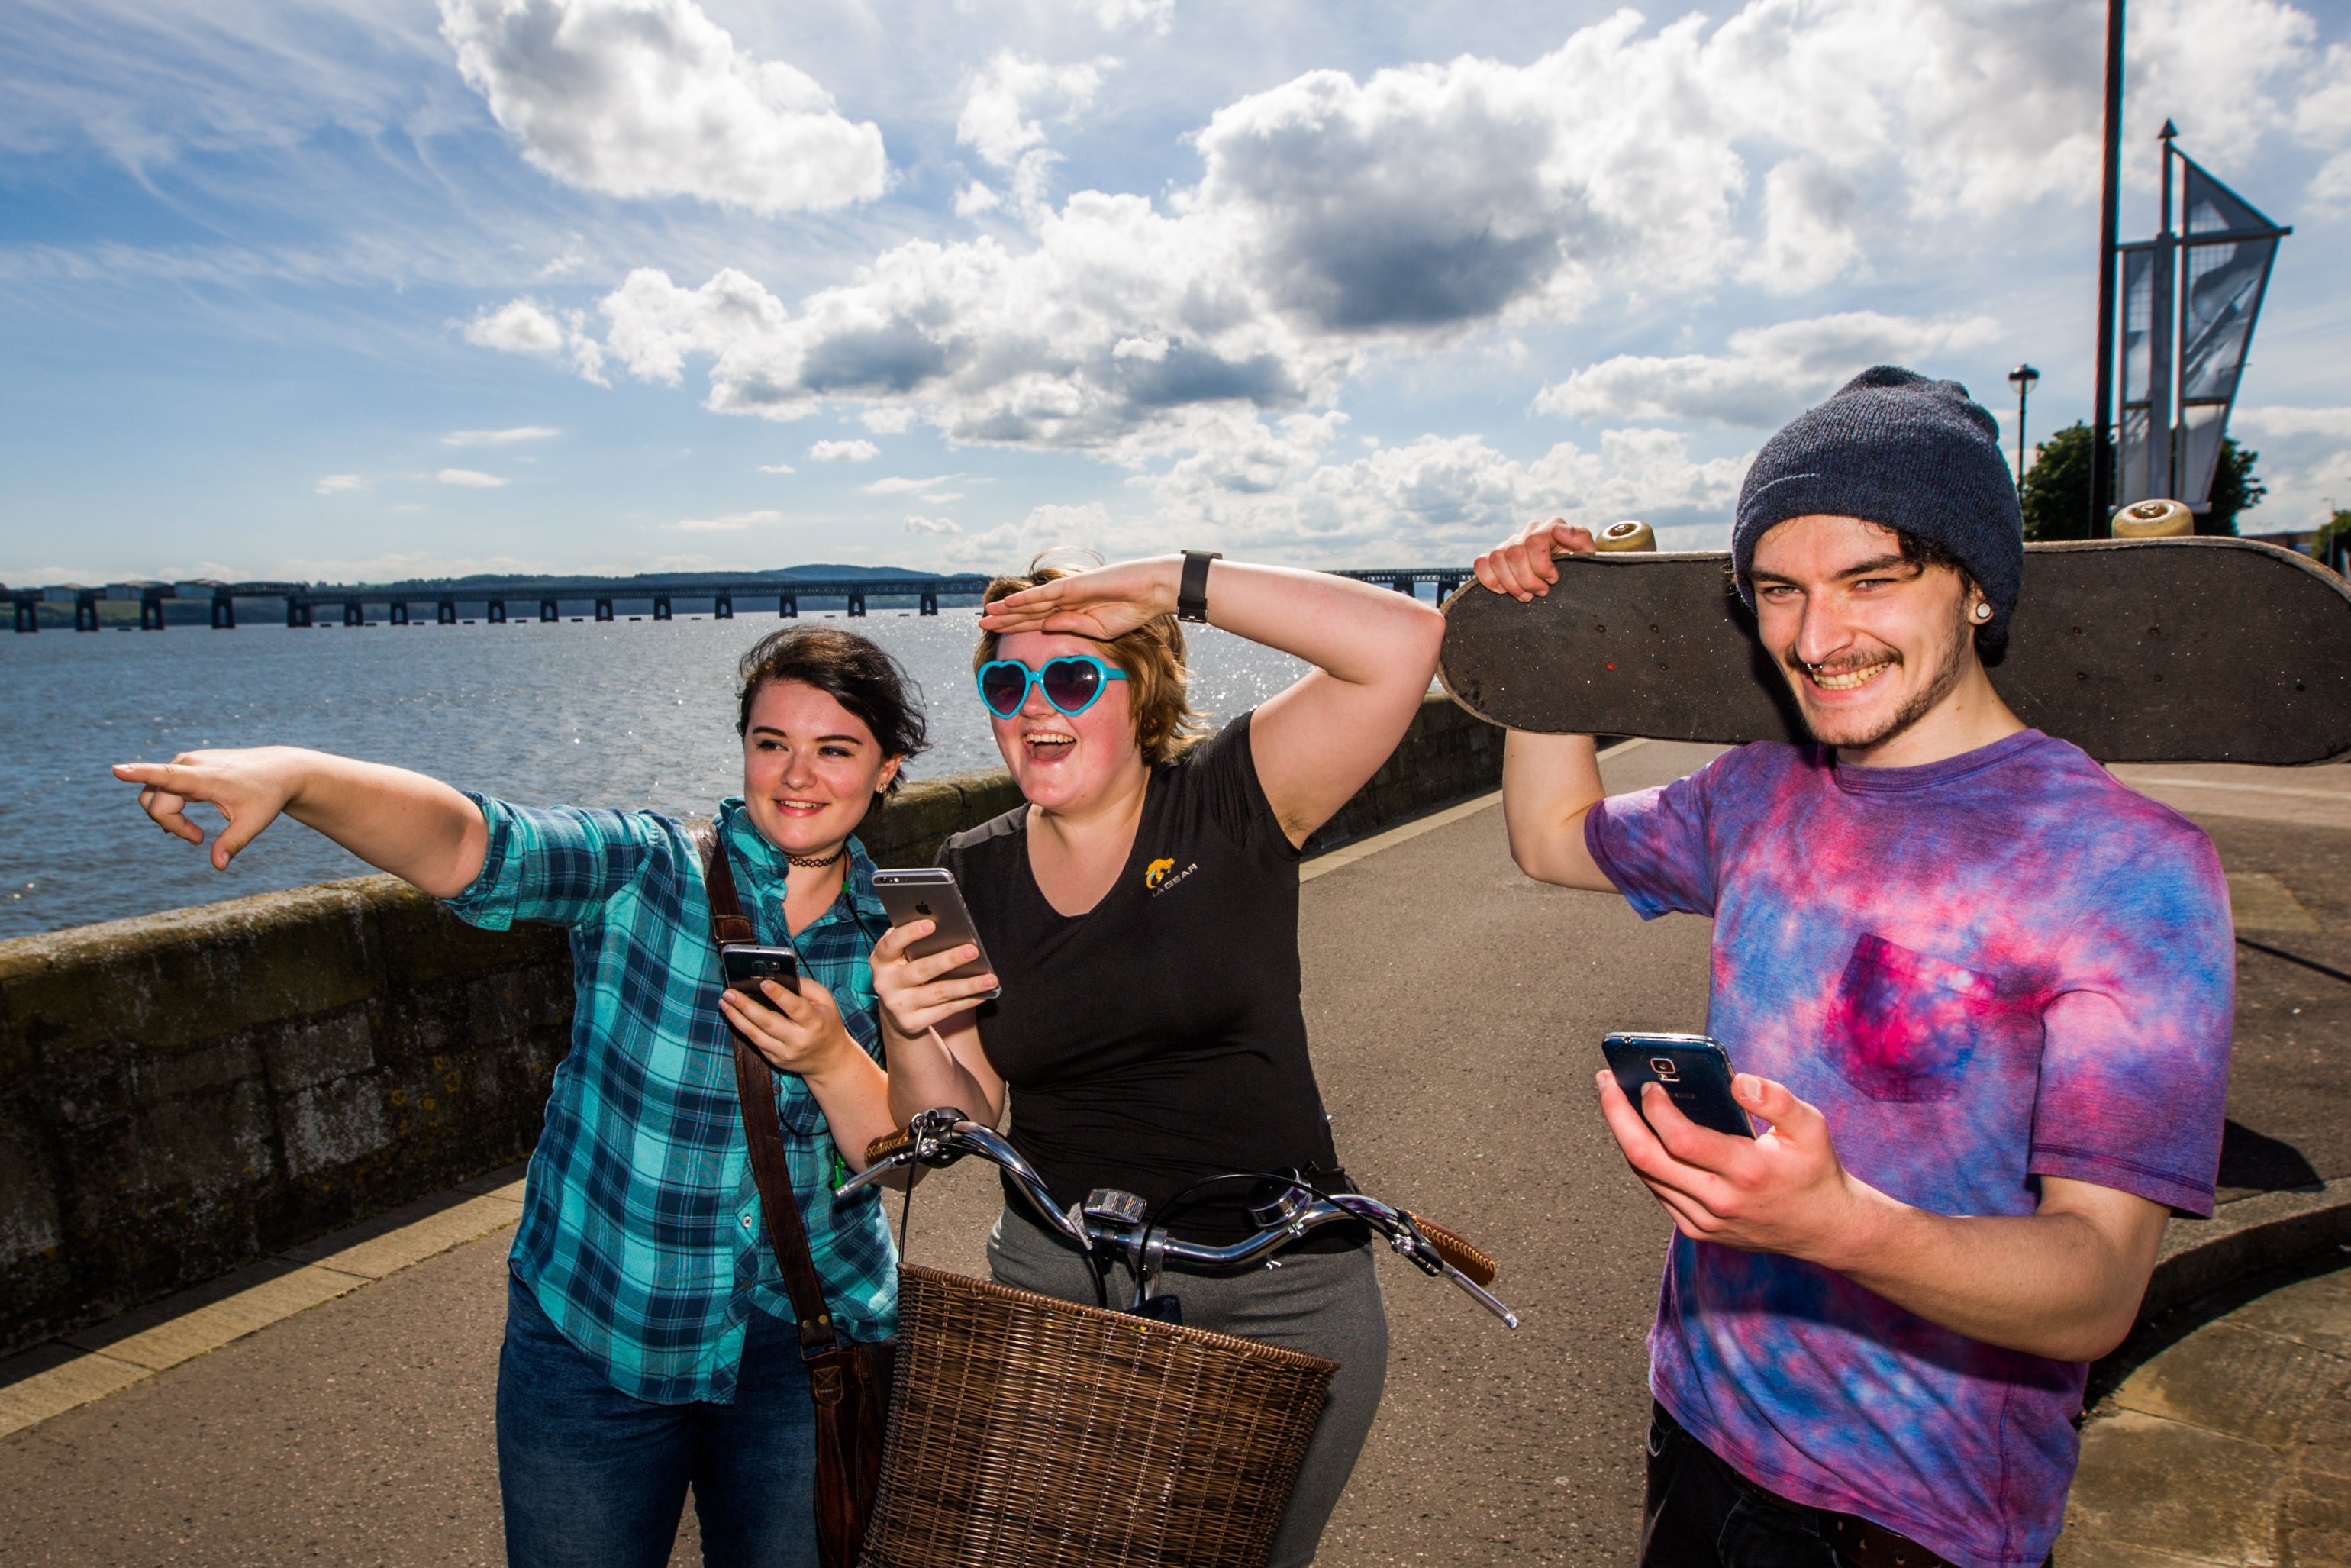 Dundonians have been chasing Pokemon all over the city since the launch of Pokemon Go. Picture shows left to right, Sarah Sharkie, Keilidh Bradley and Fergus Russell (both studying Animation at DJCAD) playing the Pokemon Go app on their phones at Riverside Dundee.